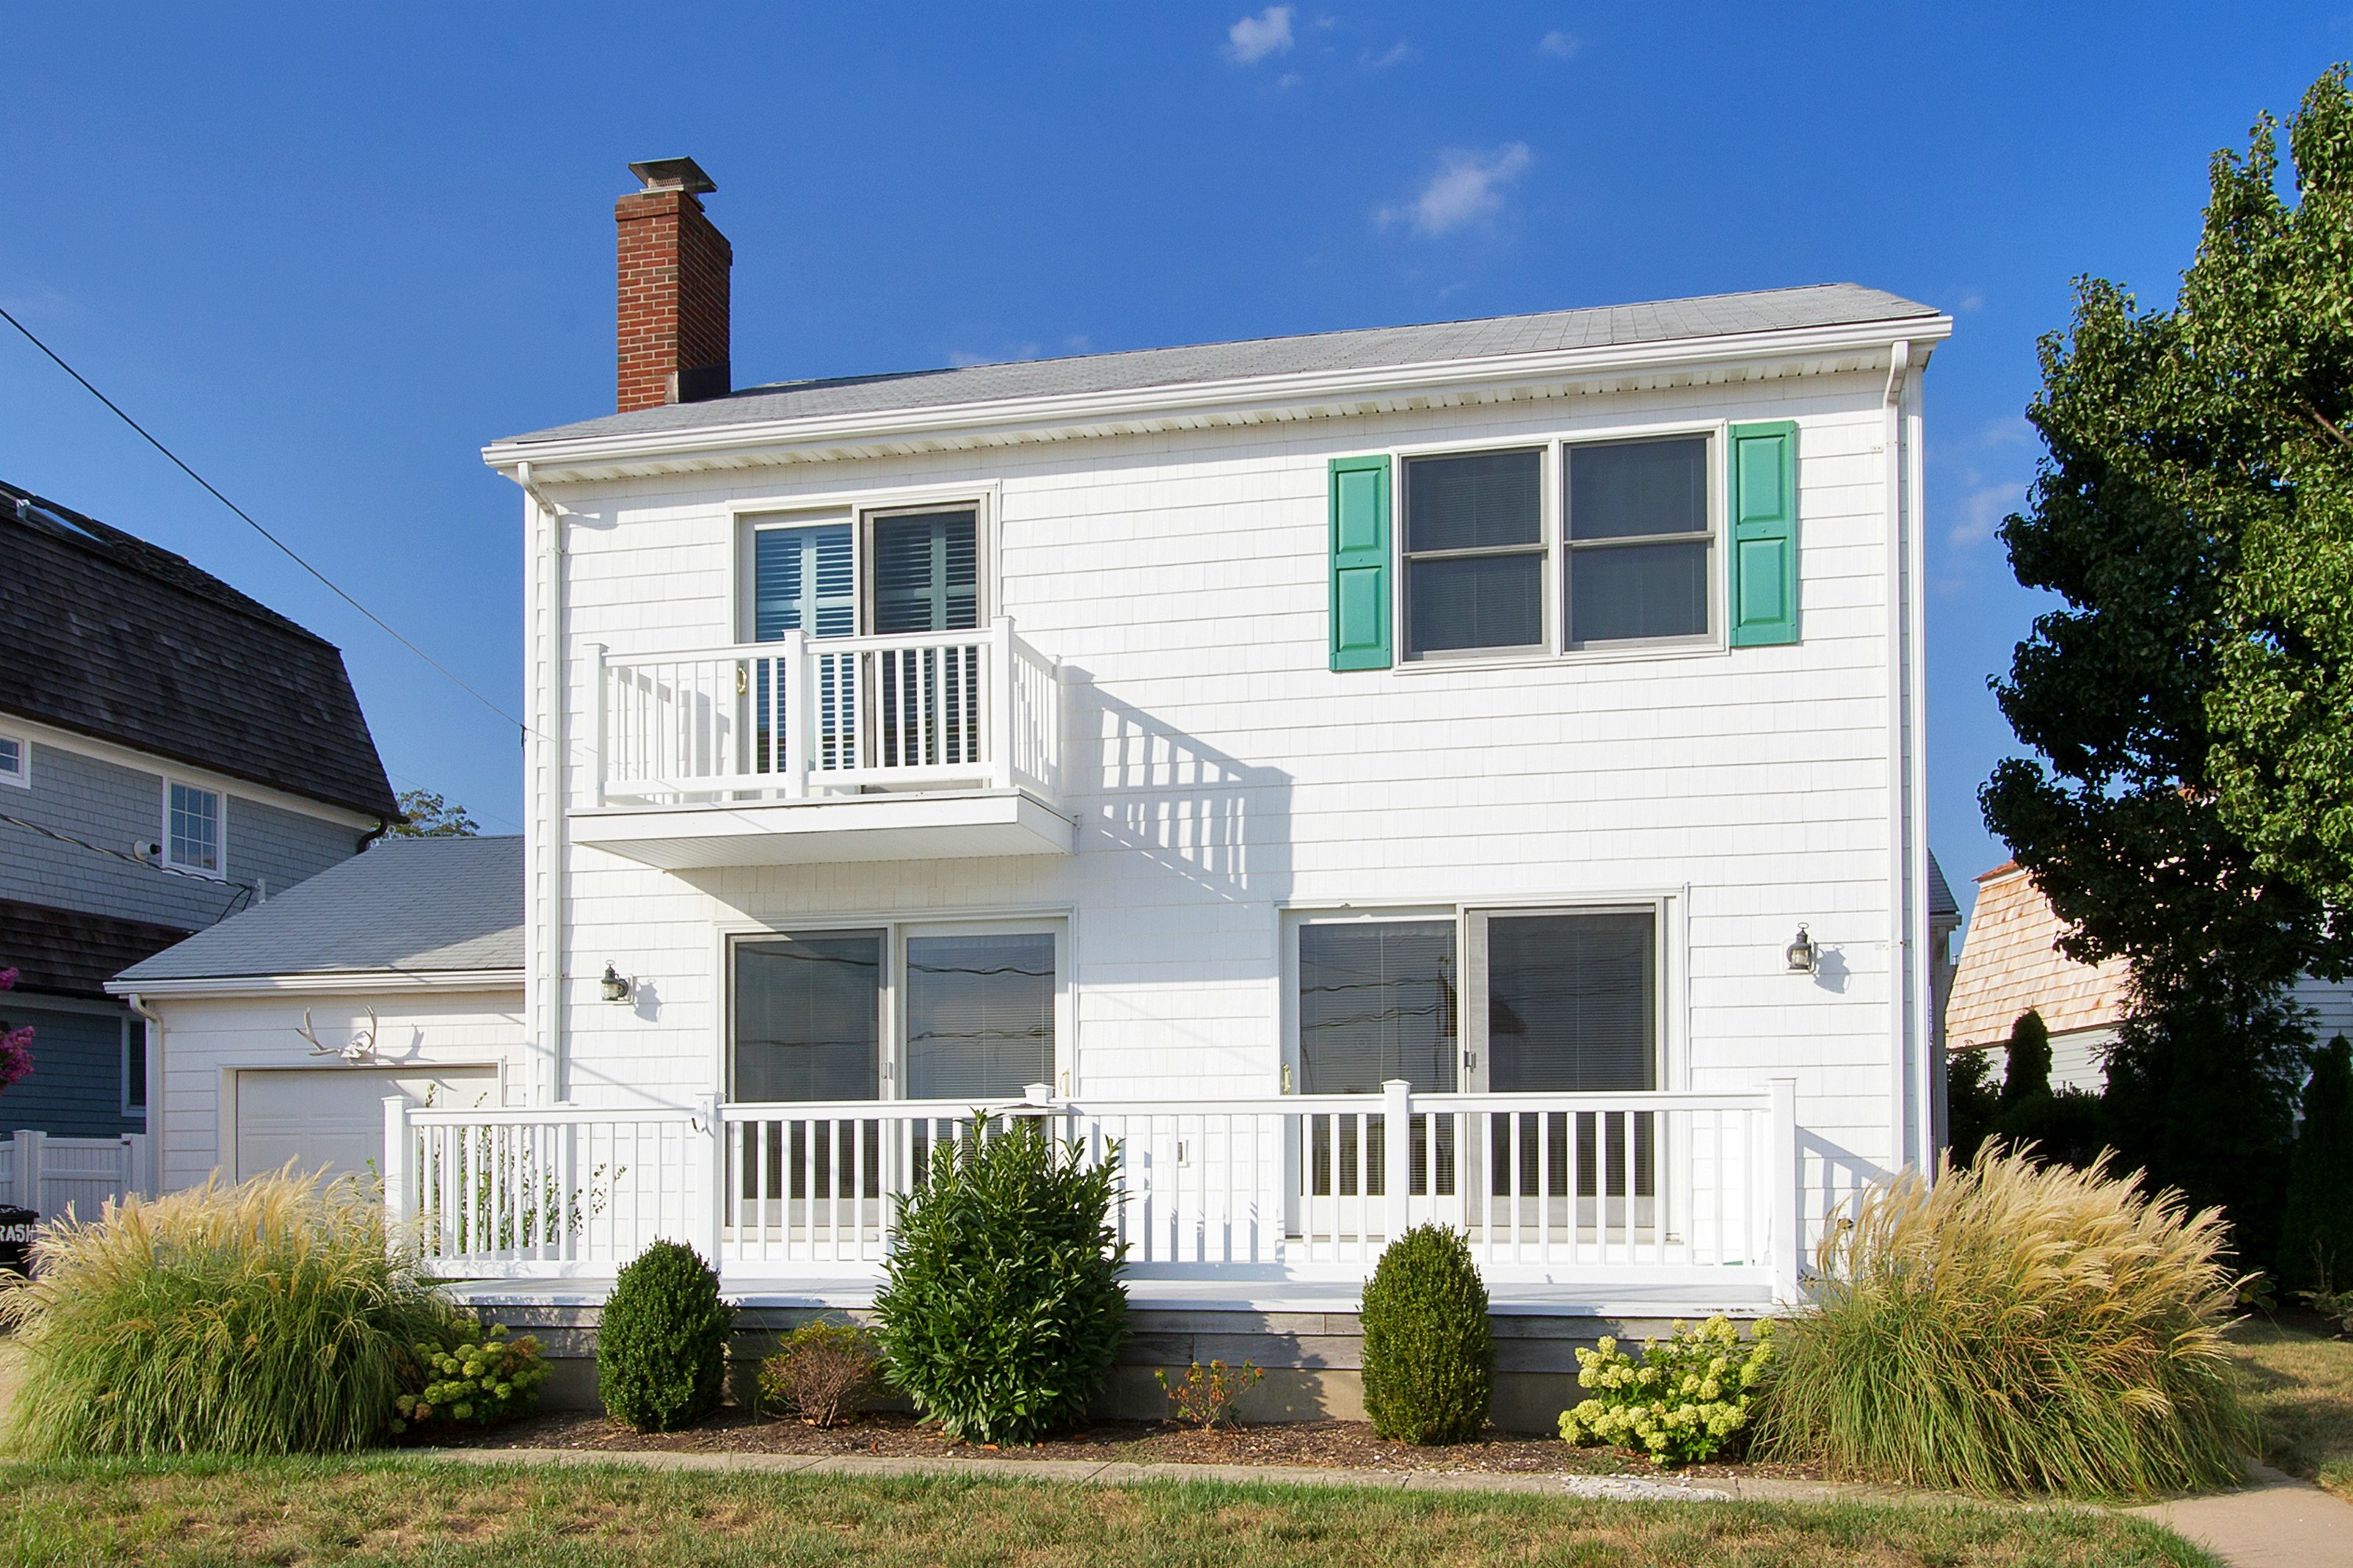 Single Family Home for Sale at Scenic Waterfront Colonial 390 Perrine Blvd Manasquan, New Jersey, 08736 United States